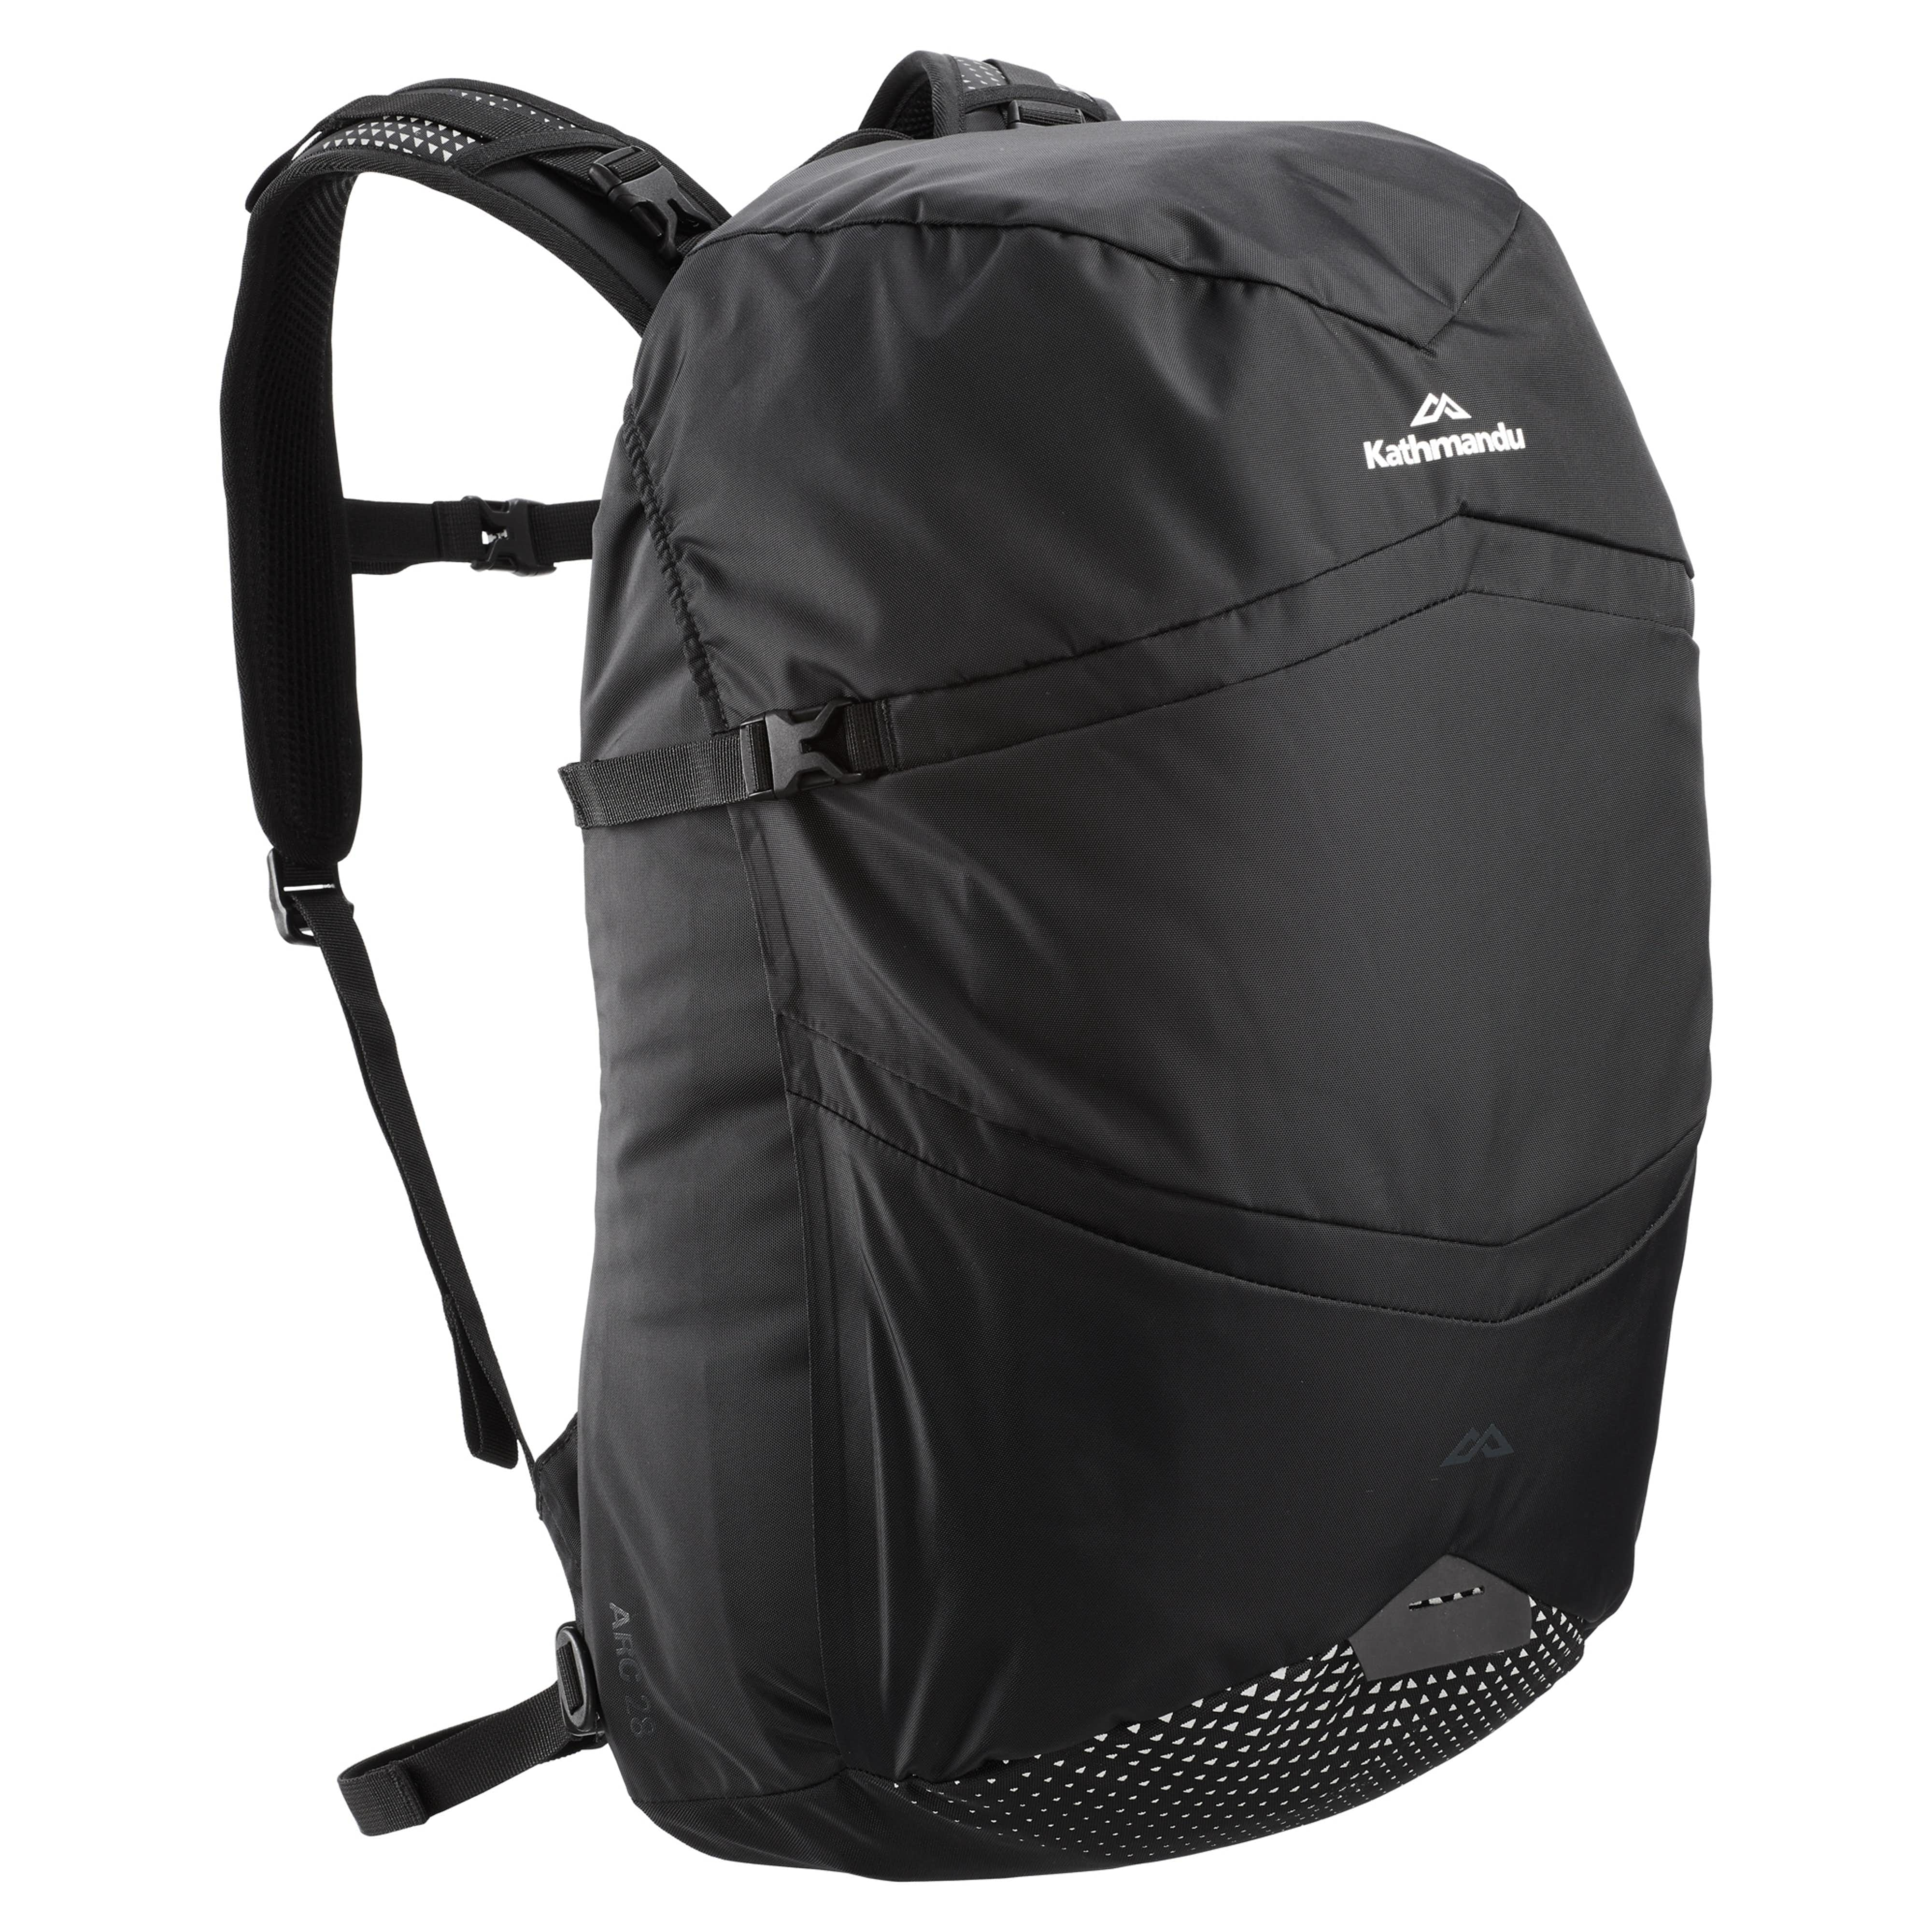 38d99f2a32 Arc 28L Commuter Backpack v2